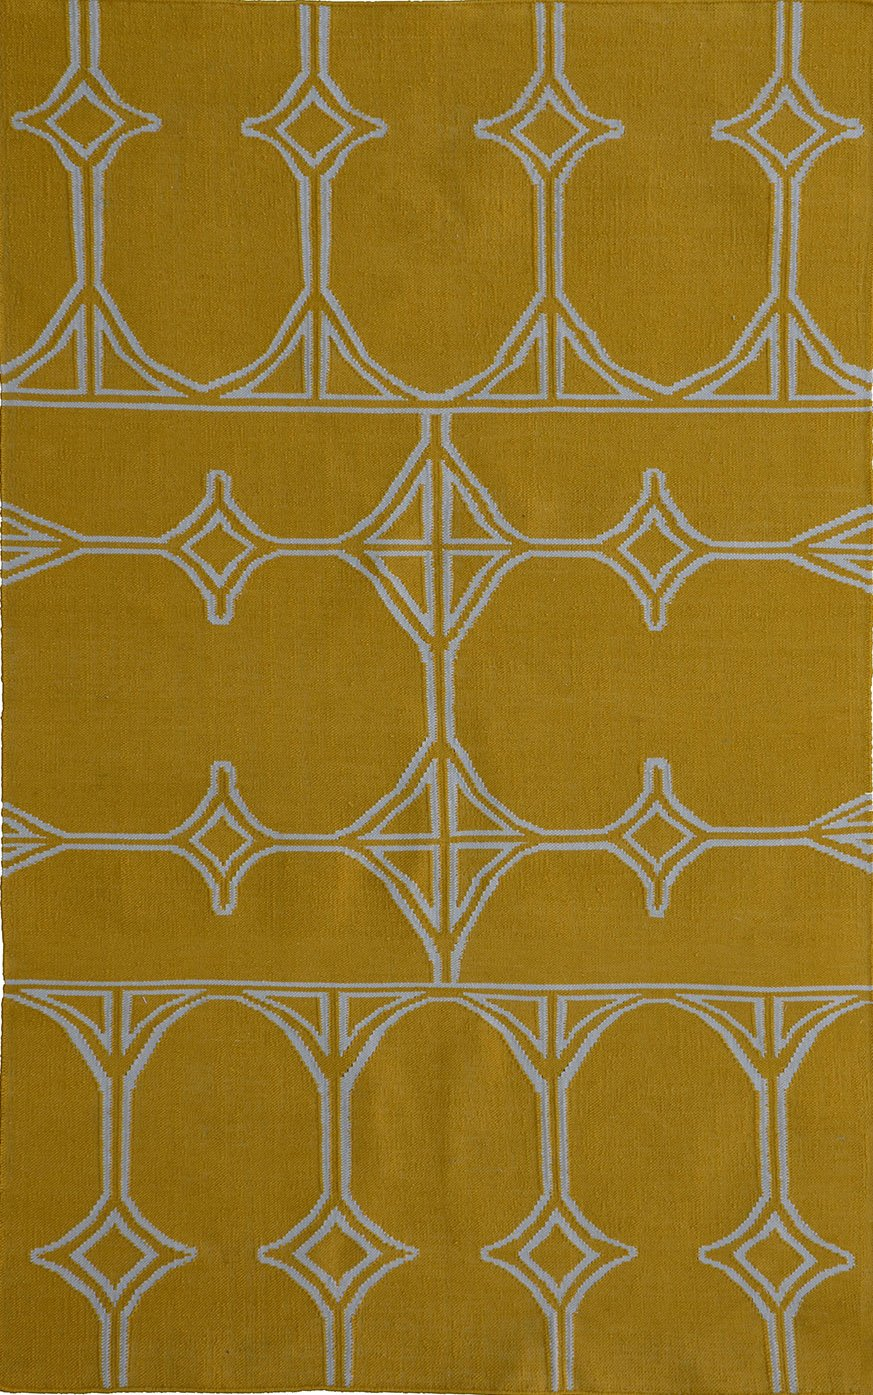 MEVA Thai Indoor/Outdoor Flat Weave Area Rug, 8-Feet by 11-Feet, Yellow by Meva